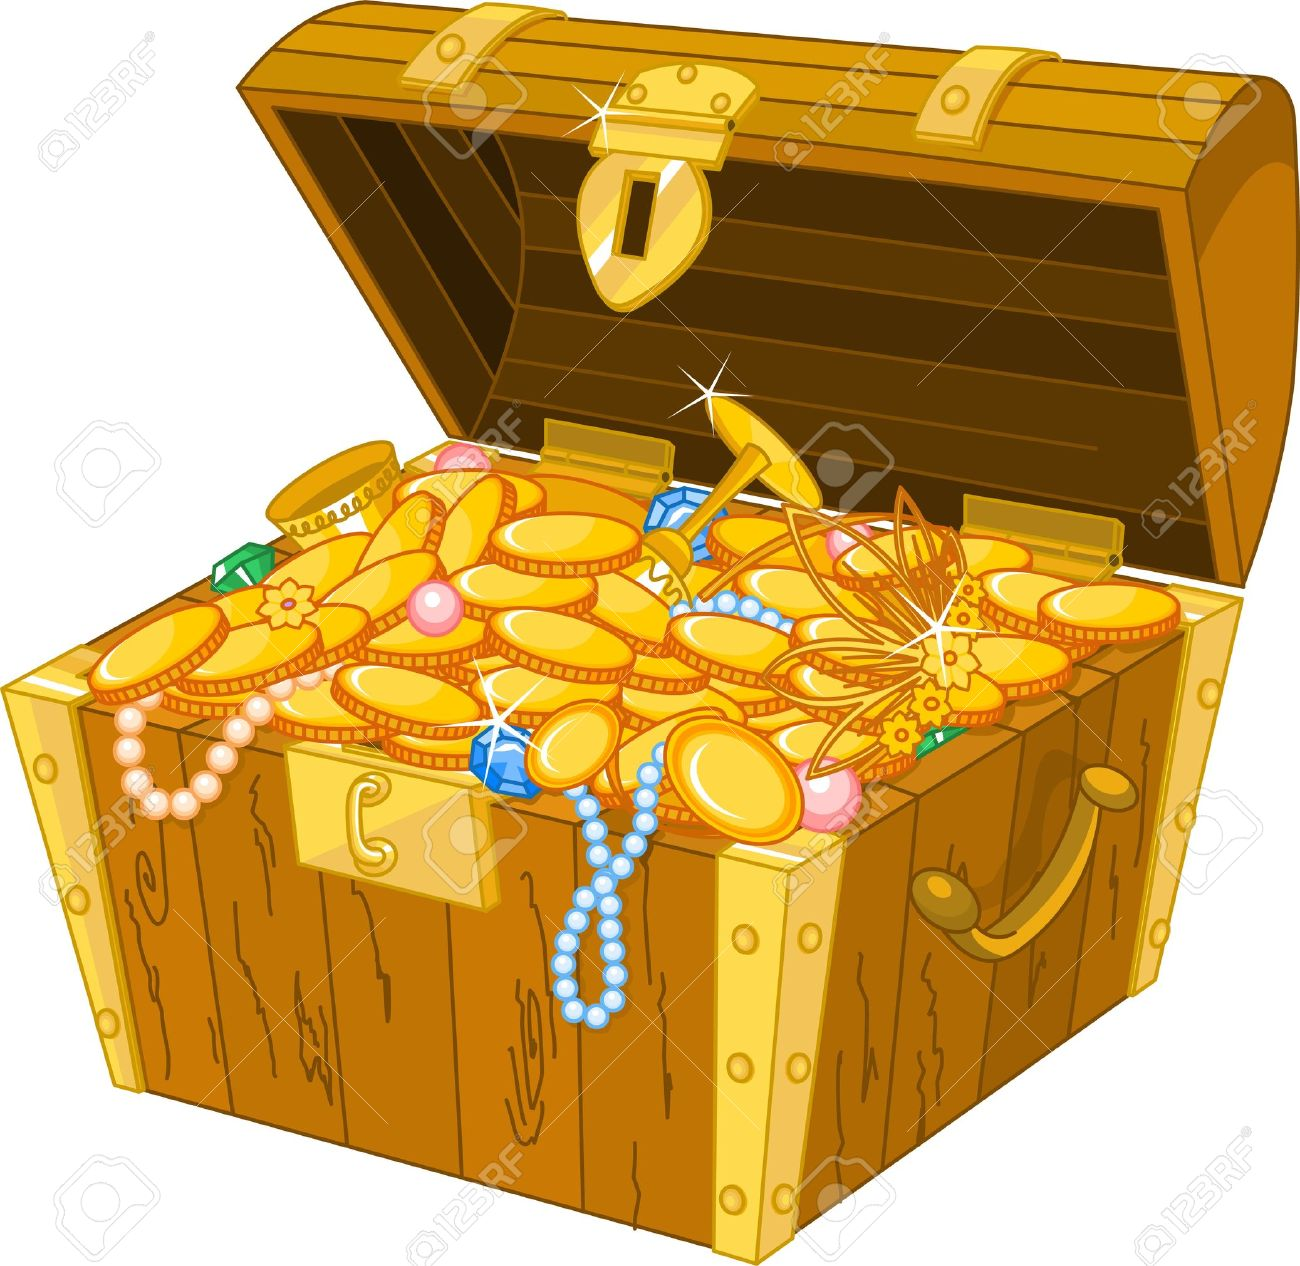 Illustration Of Treasure Chest Full Of Gold Royalty Free Cliparts ...